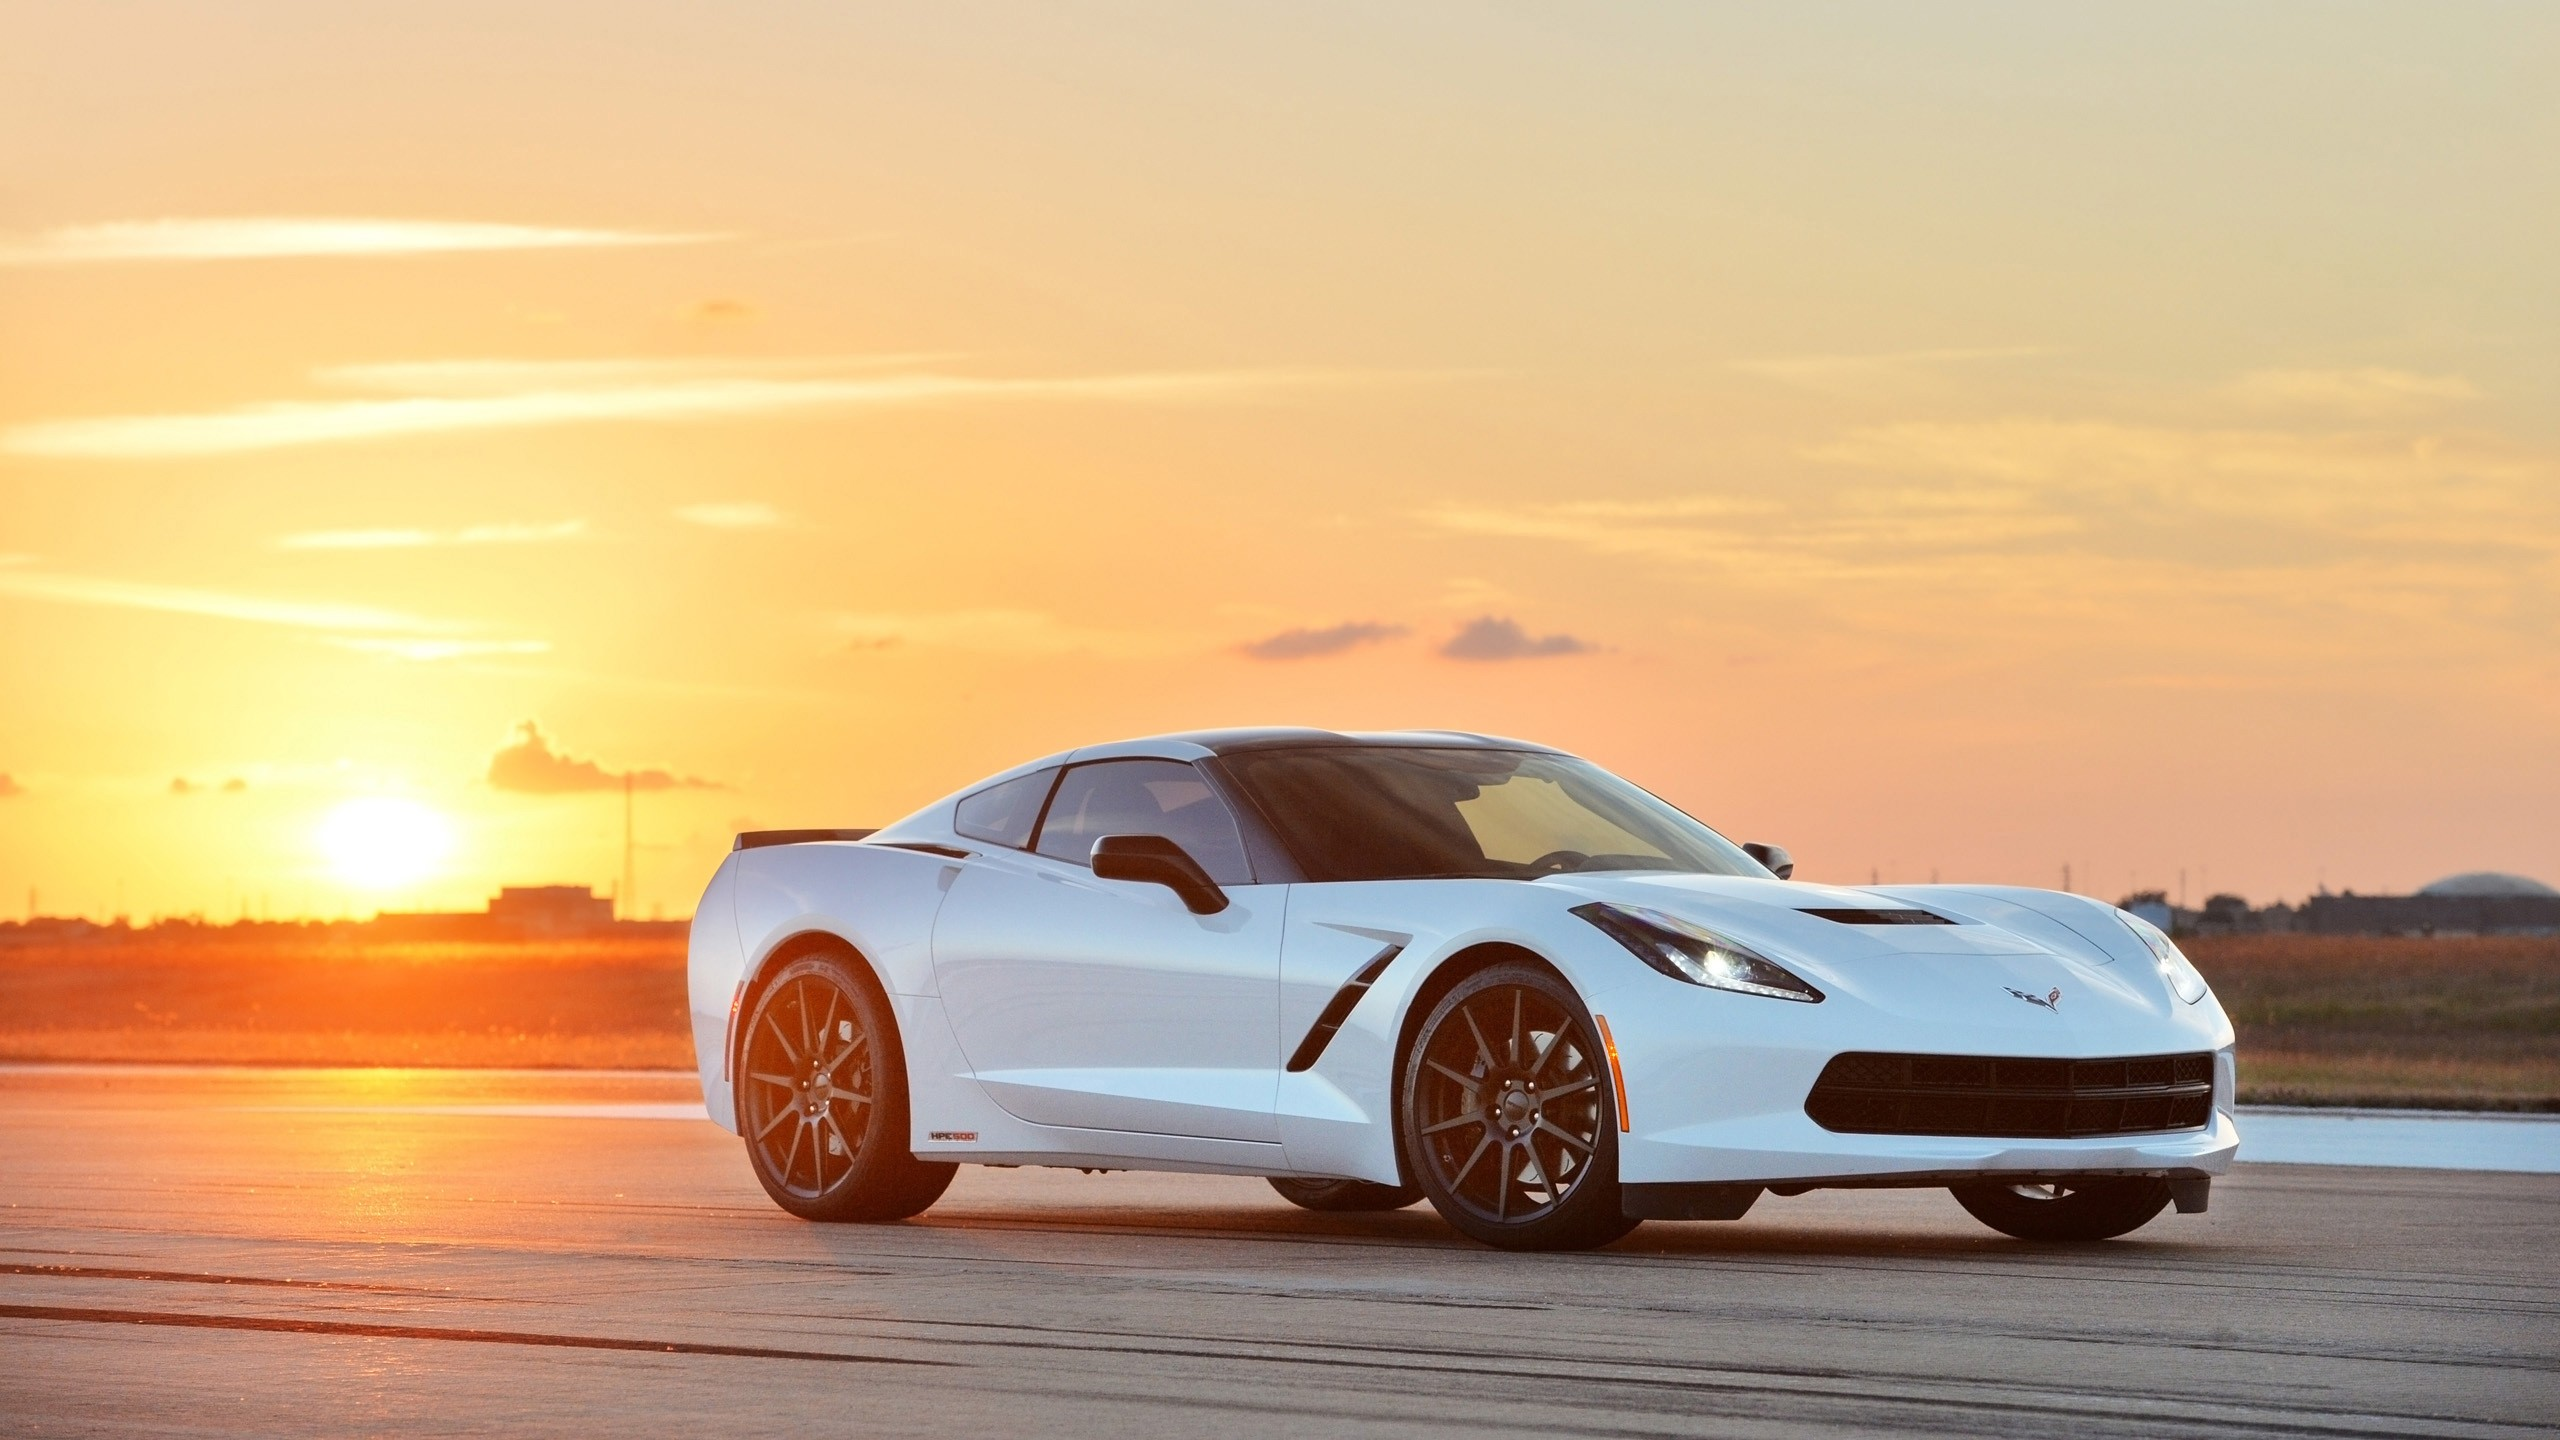 2014 Chevrolet Corvette Stingray HPE500 By Hennessey Wallpaper | HD Car Wallpapers | ID #3911